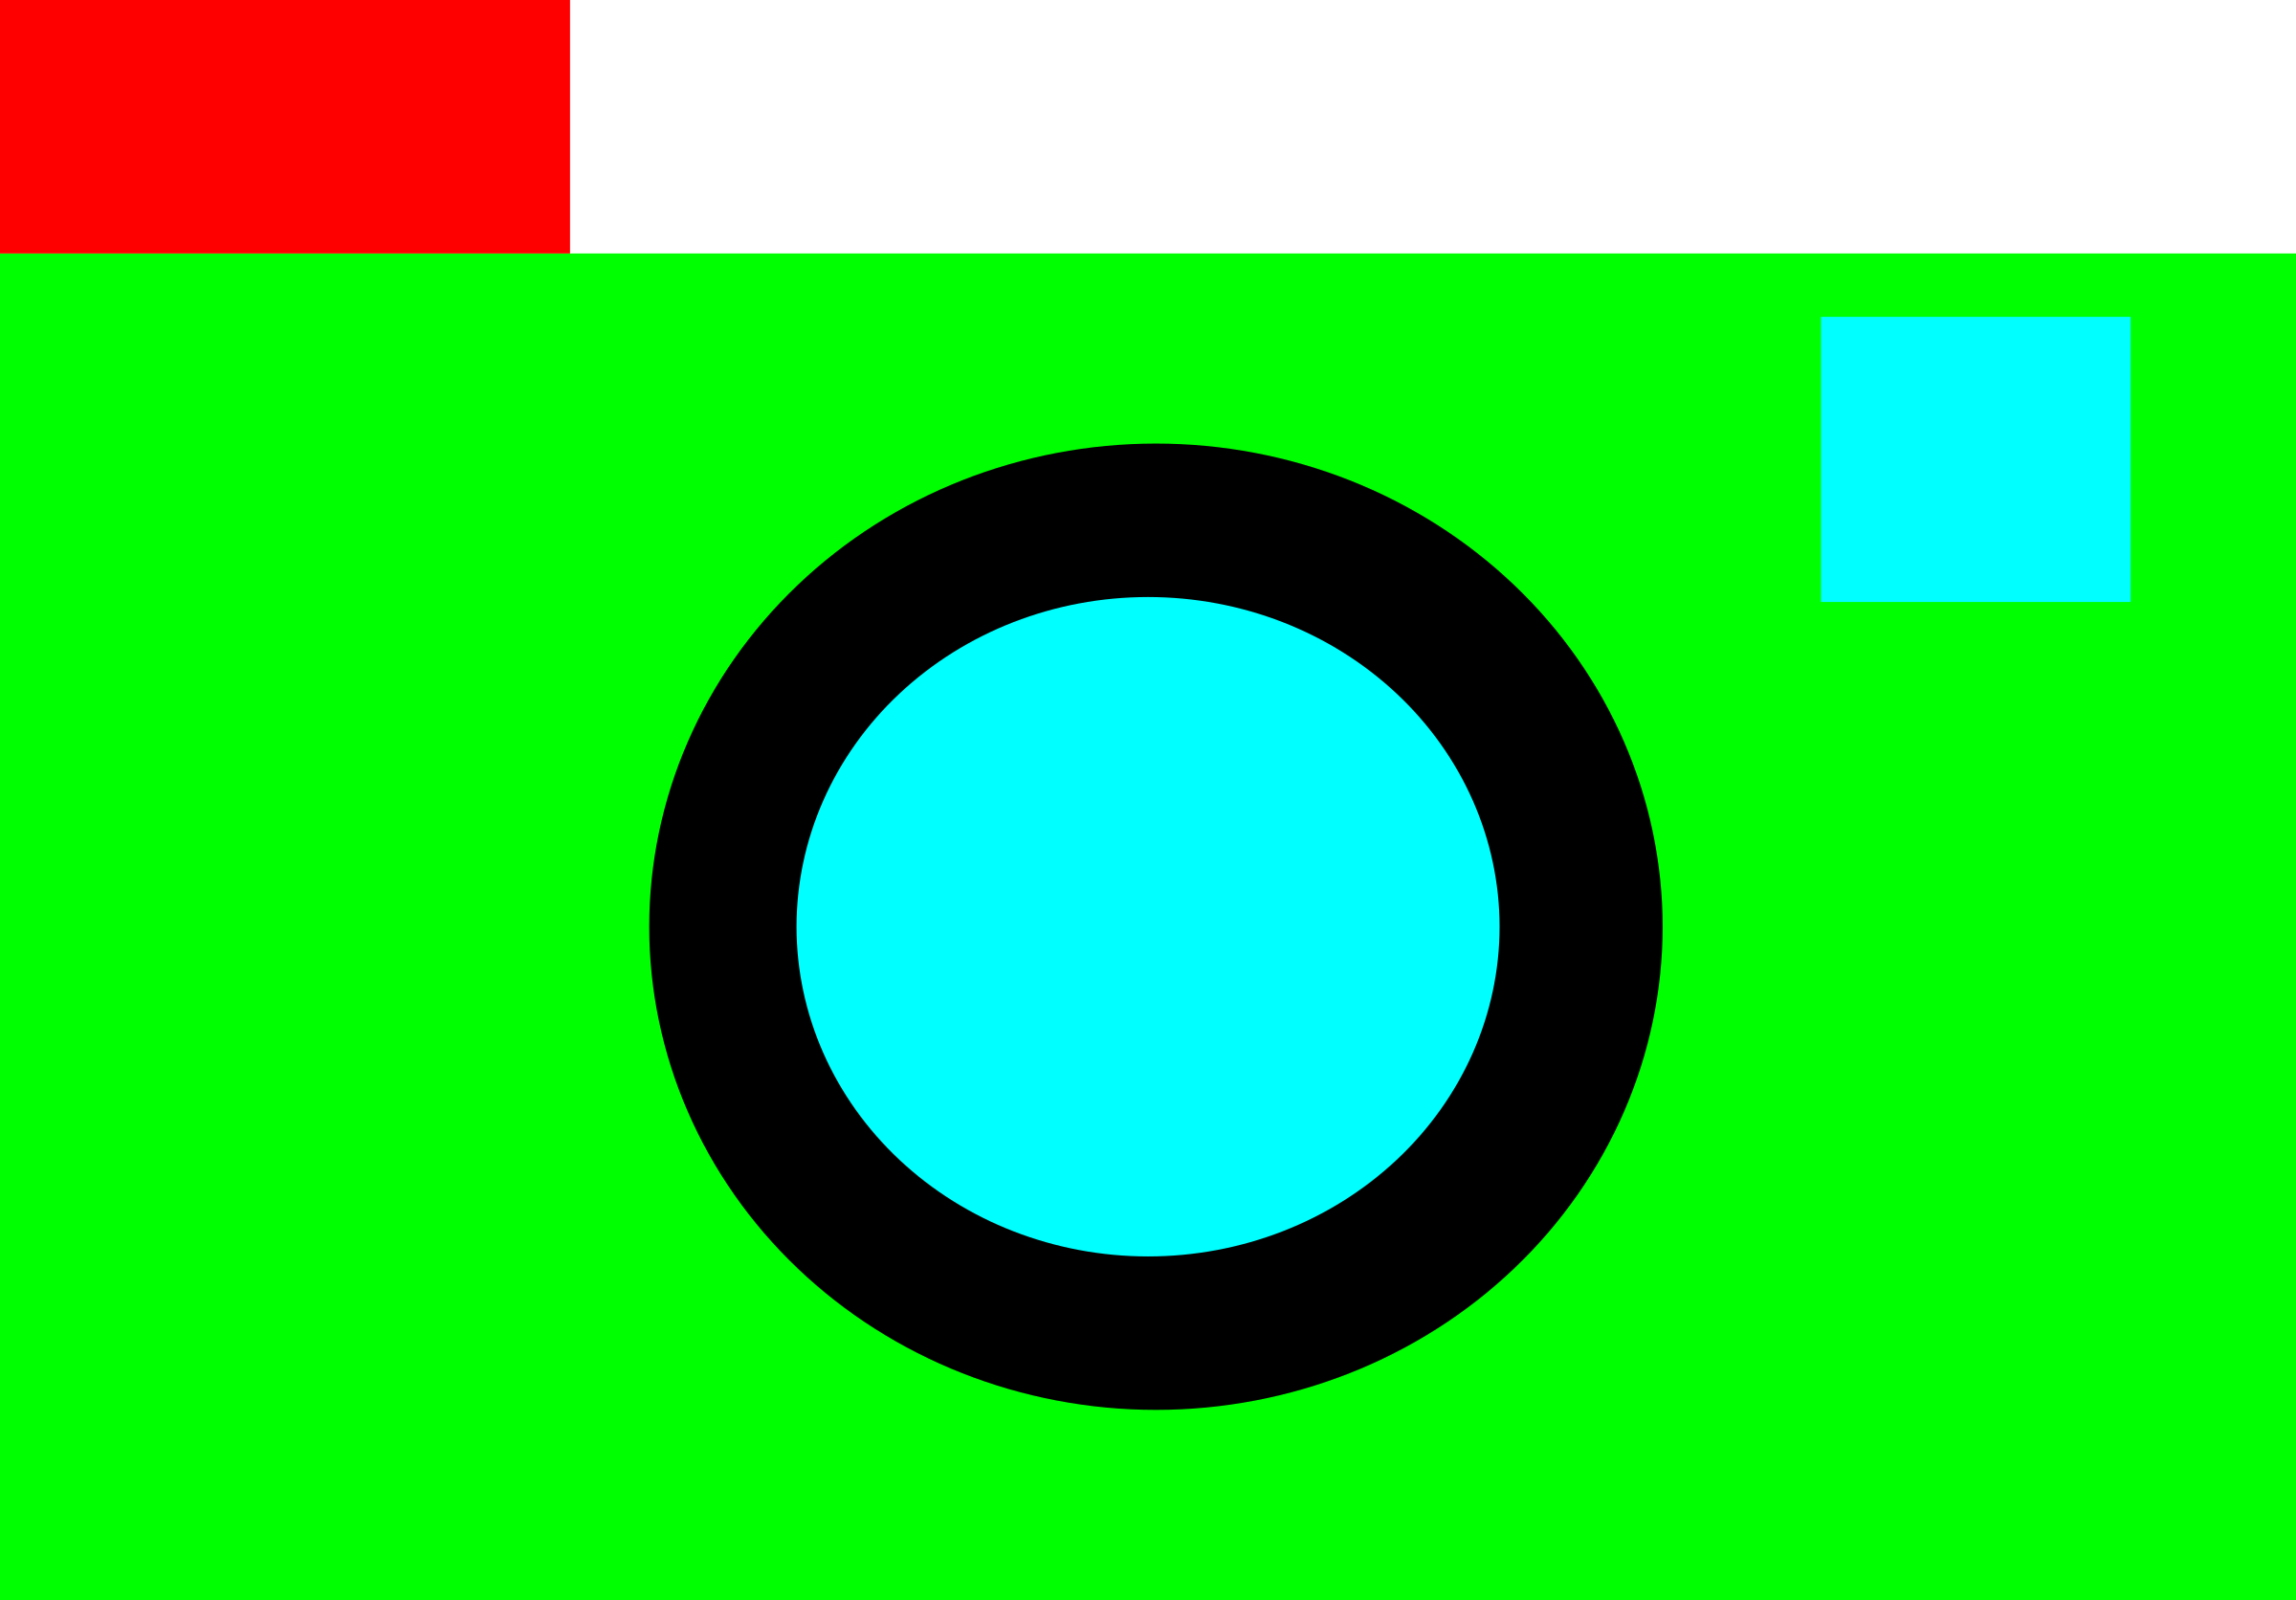 camera icon by Anonymous